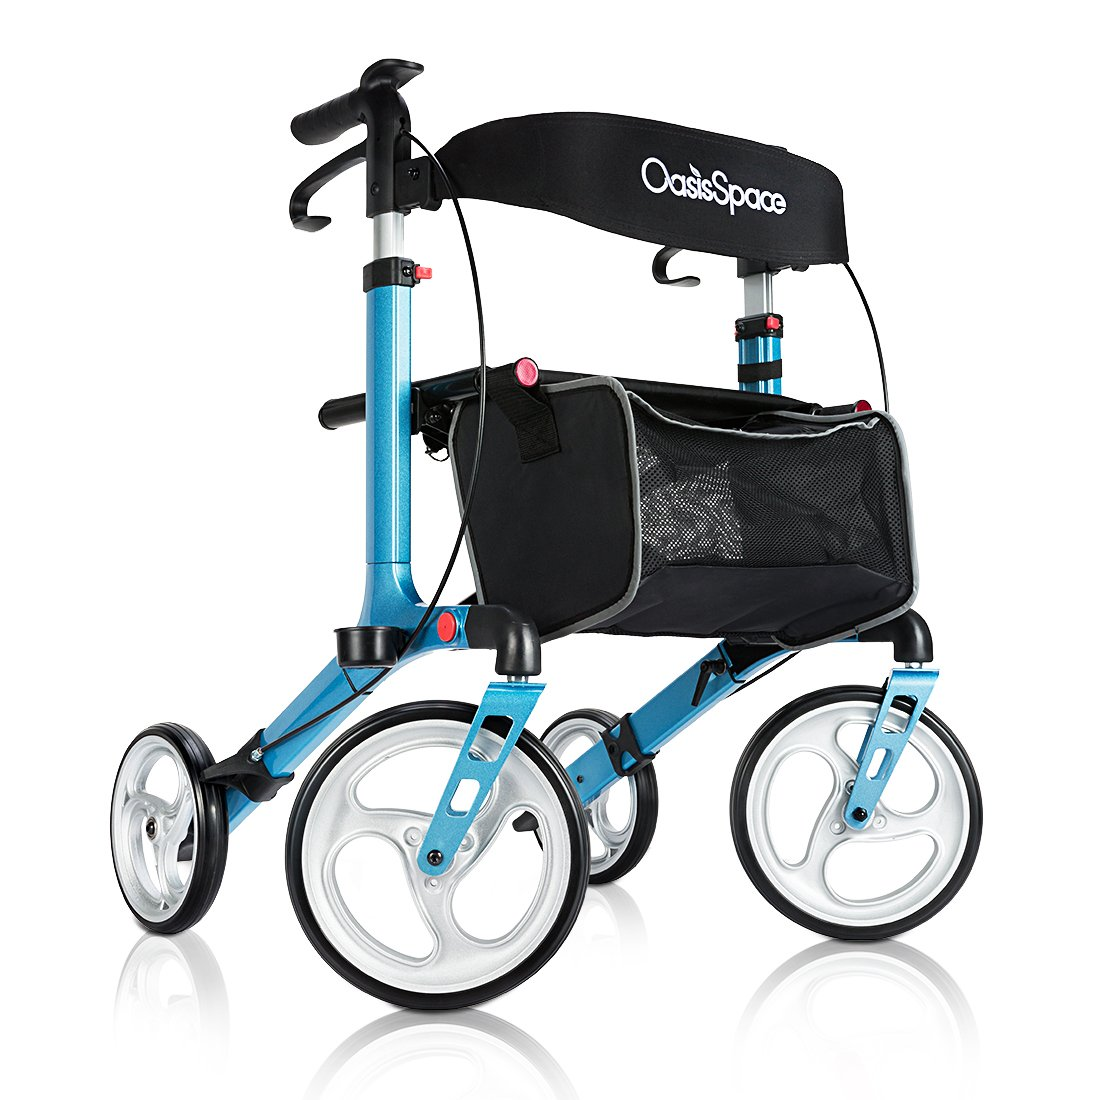 Deluxe Aluminum Rollator Walker, with 10'' Wheels and Seat Compact Folding Design Lightweight Baking Finish By OasisSpace (Coral Blue)